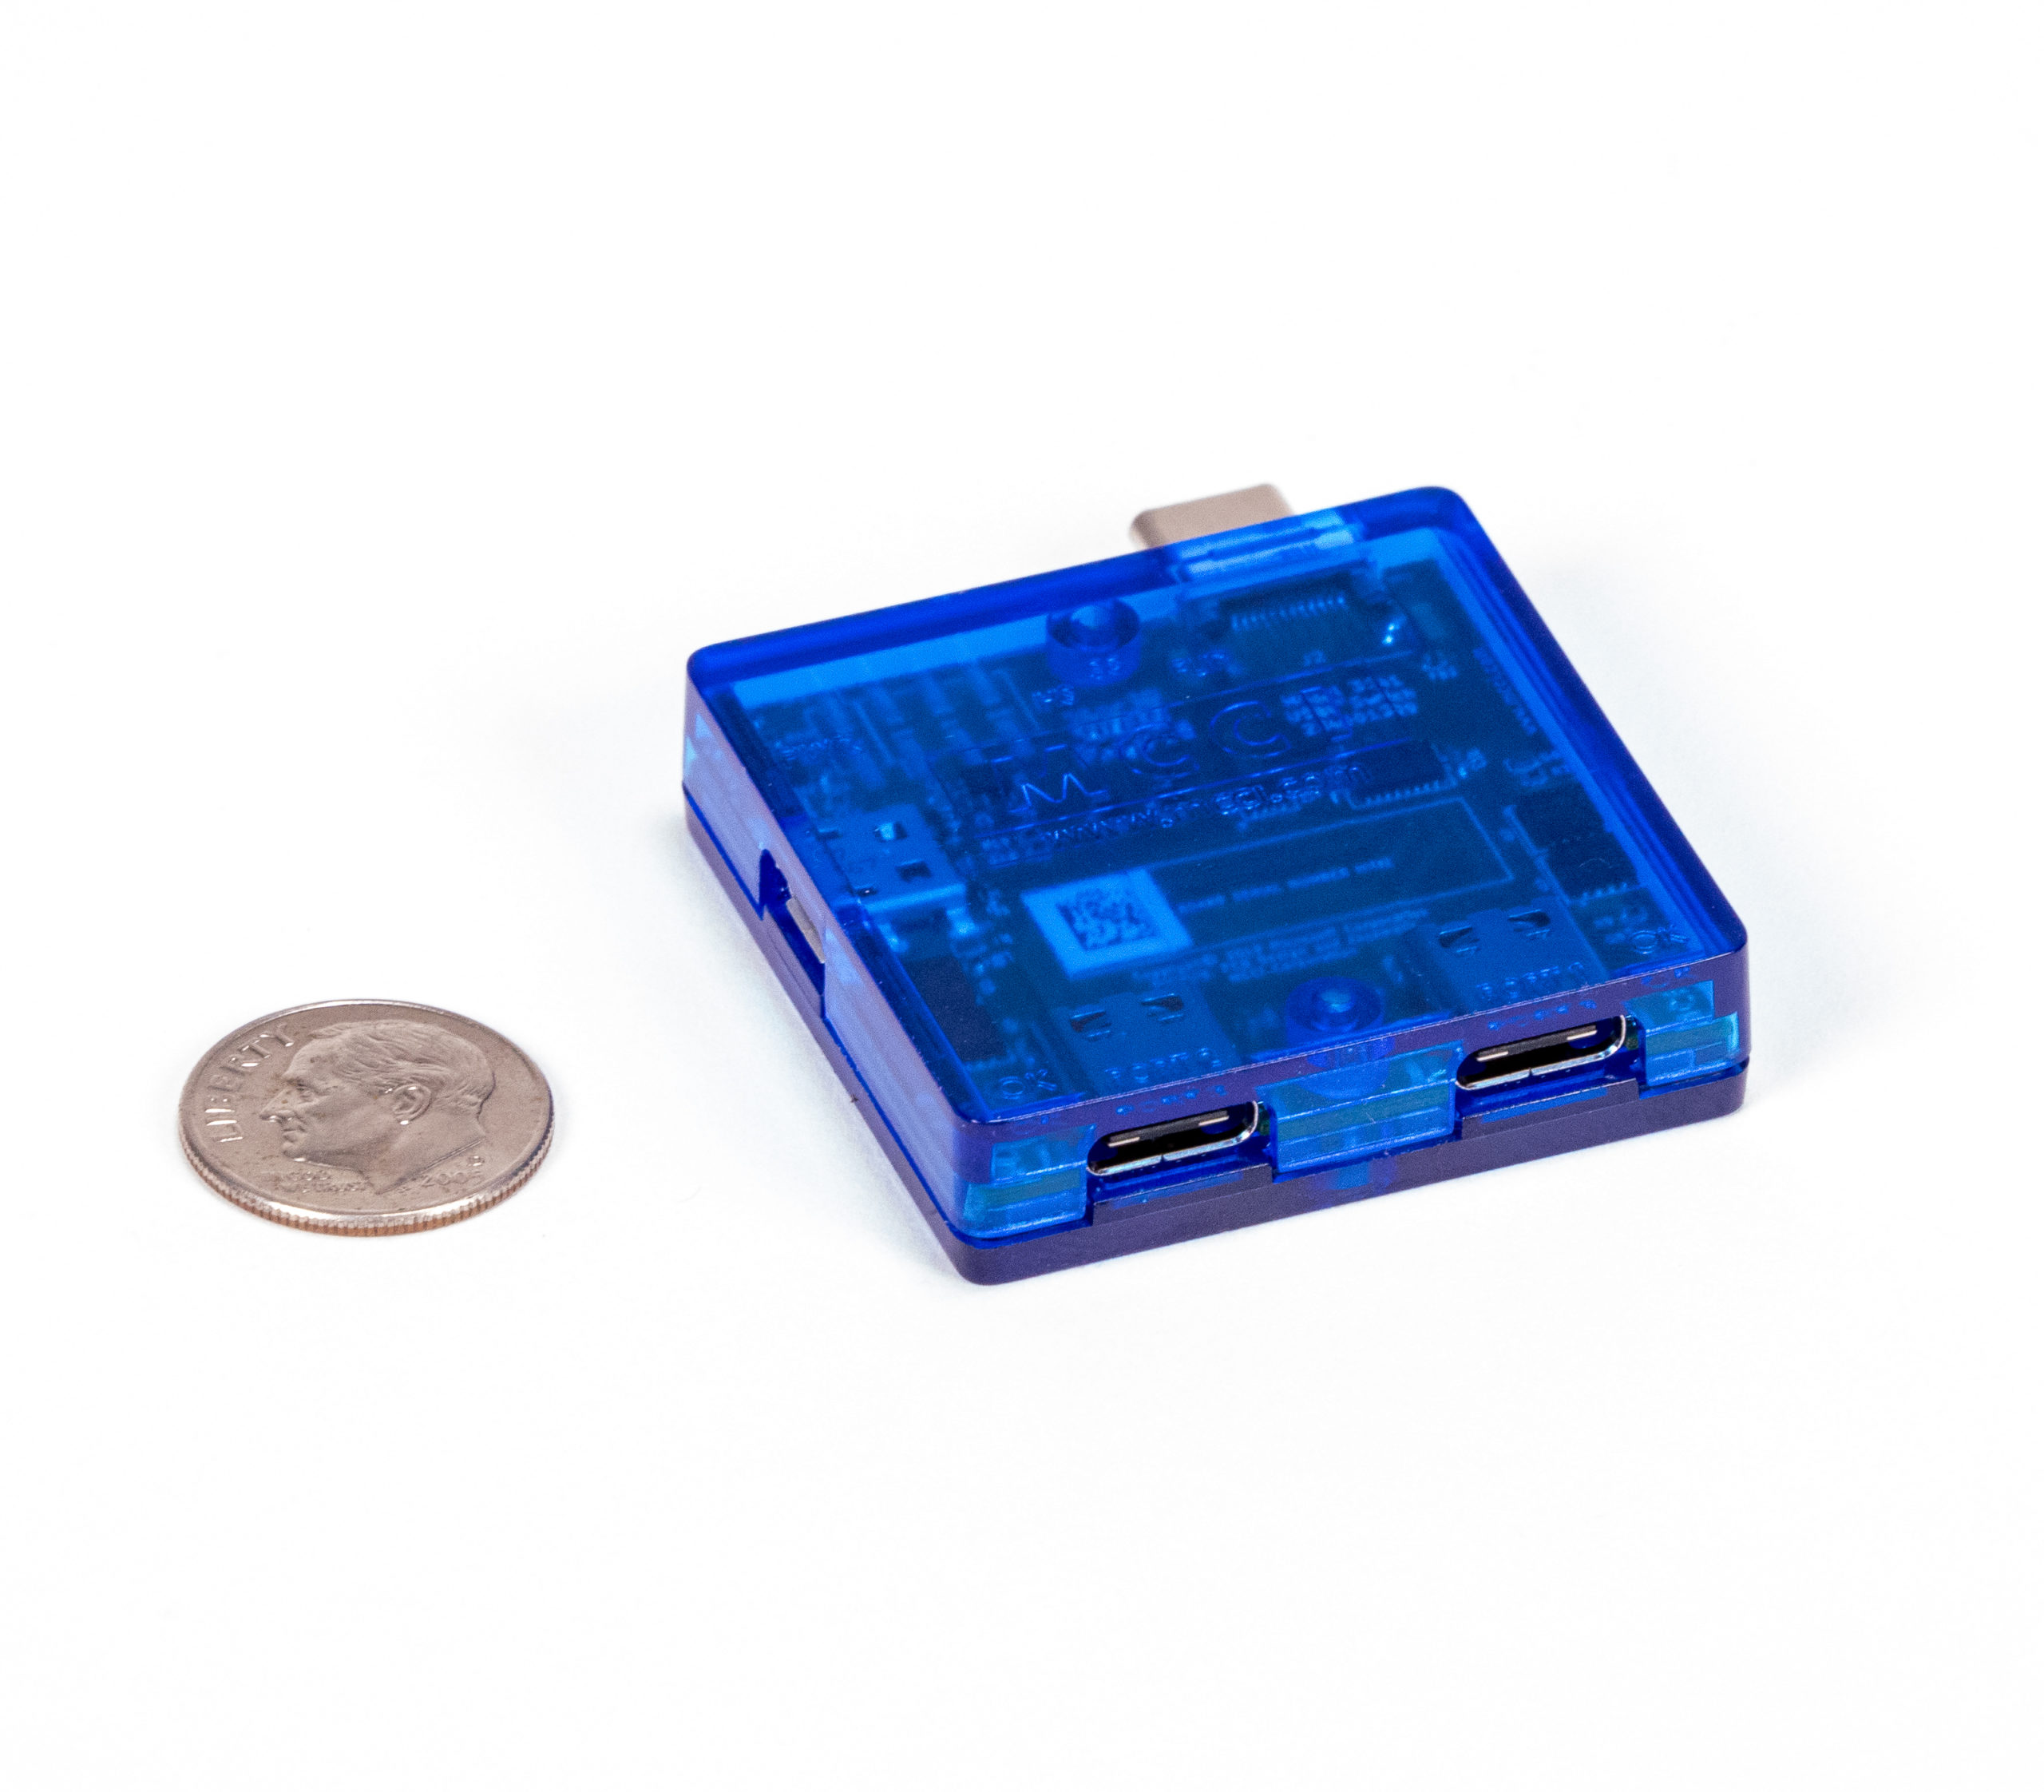 USB4 Switch in enclosure, wtih dime for scale